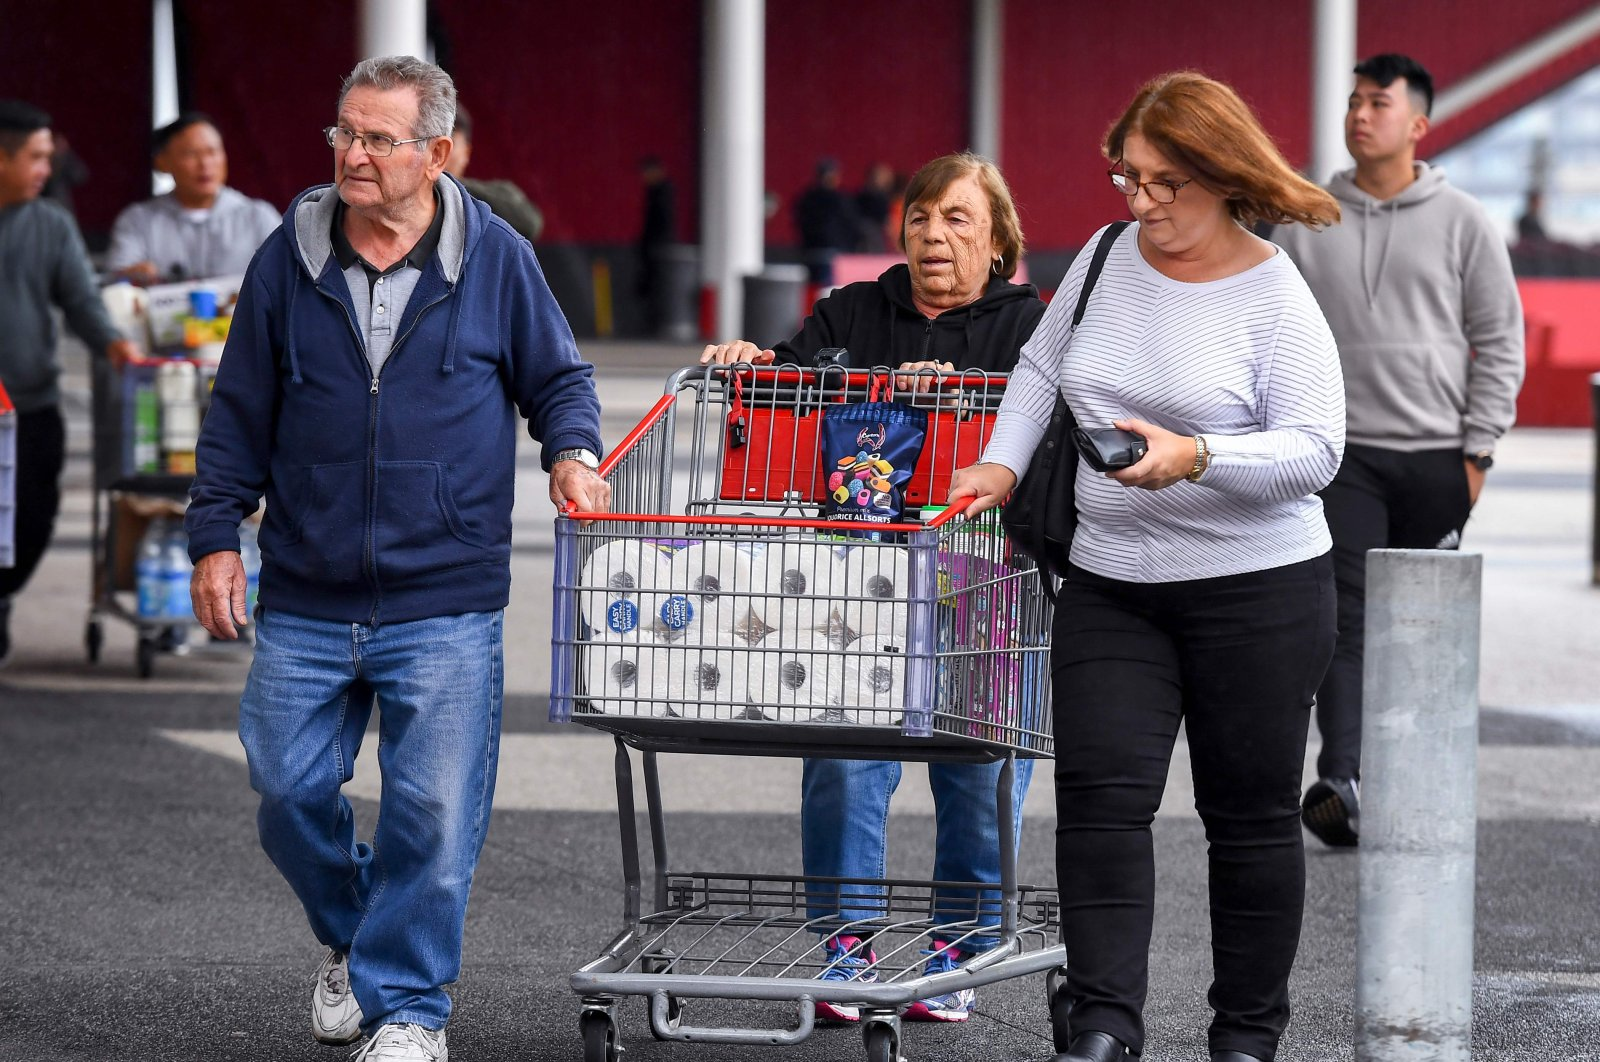 People leave a Costco warehouse with rolls of toilet paper amongst their groceries in Melbourne on March 5, 2020. (AFP Photo)